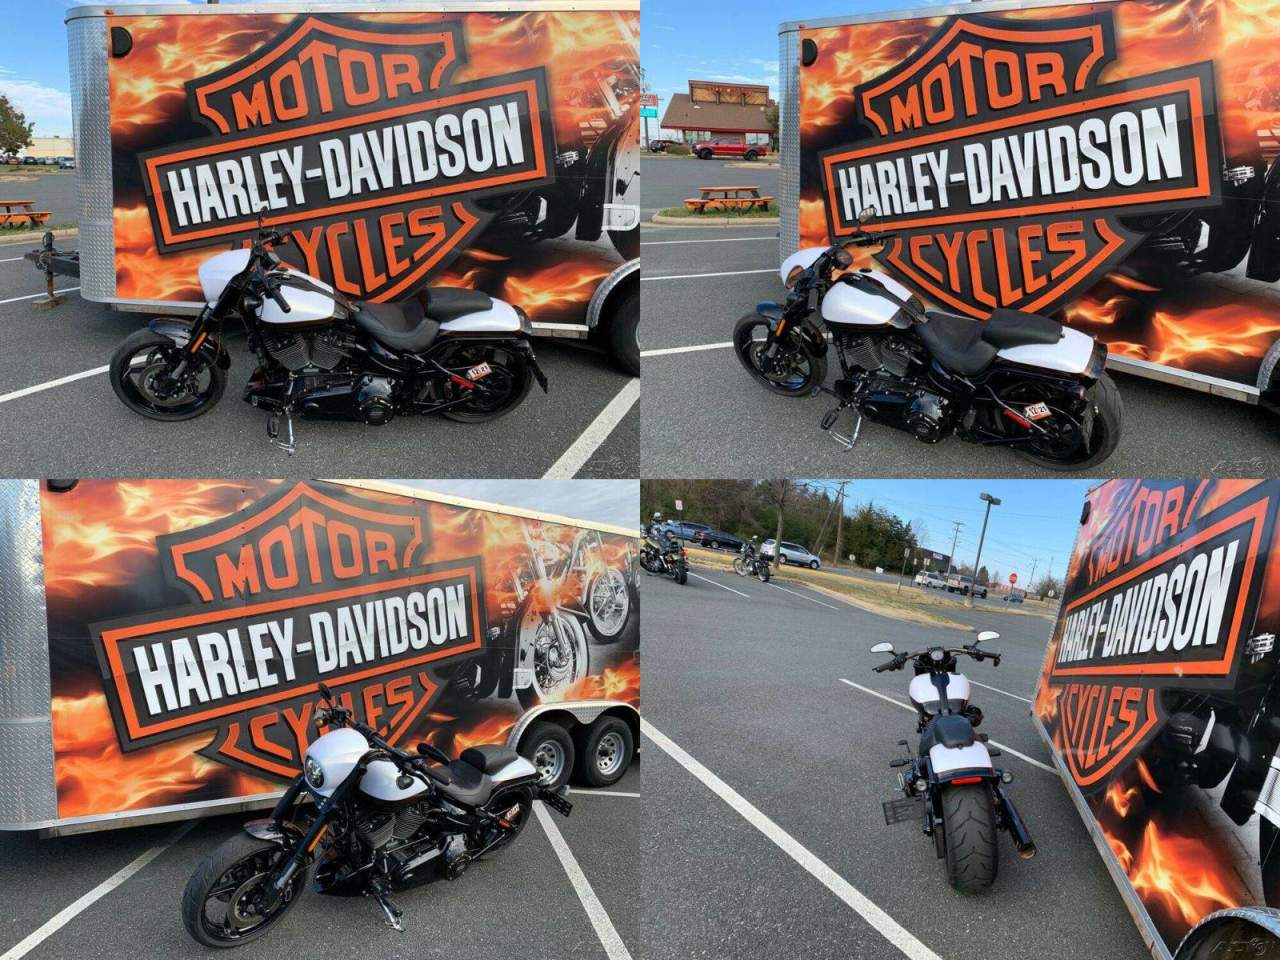 2017 Harley-Davidson Softail CVO Pro Street Breakout White Gold Pearl / Starfire Black used for sale near me